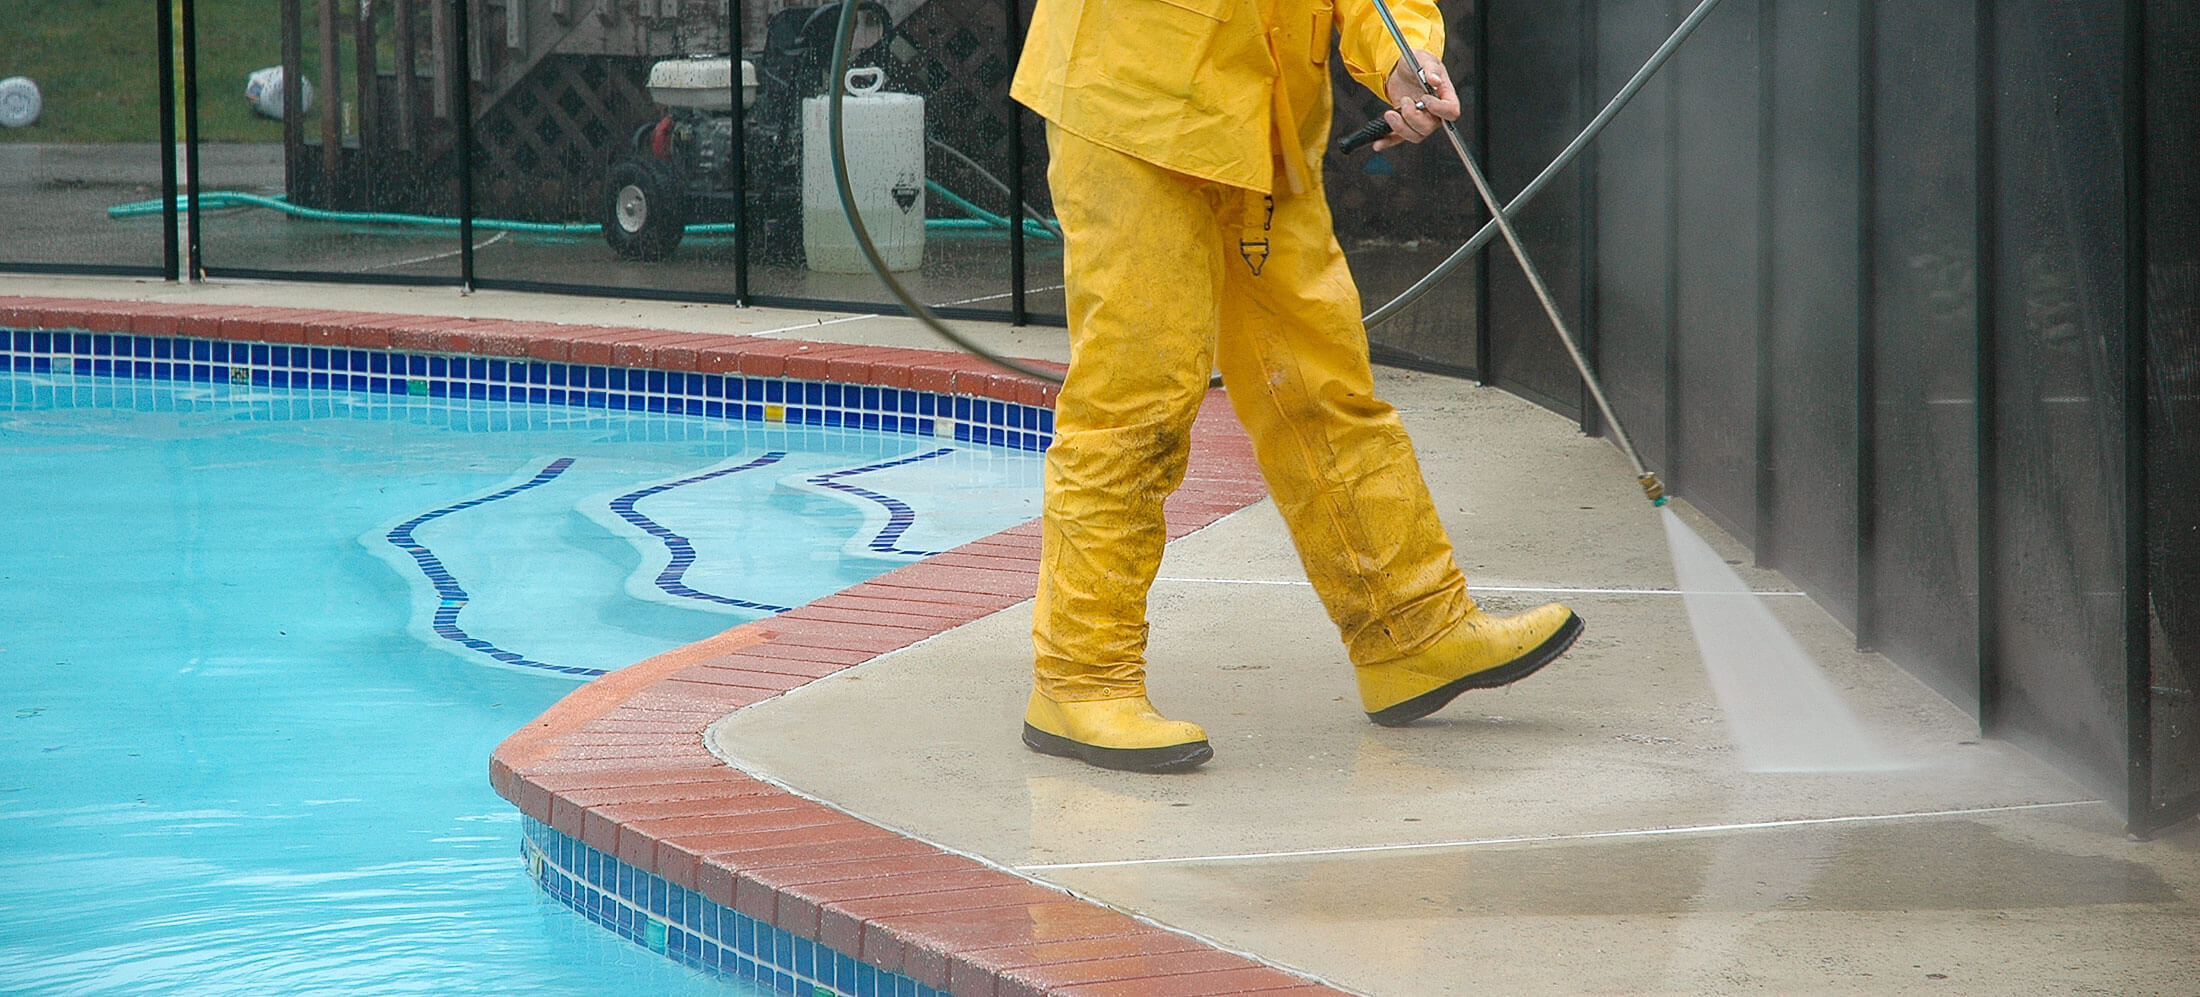 Spring Cleaning ~ Pool deck pressure cleaning services in Philadelphia and the surrounding area at John Neill Painting & Decorating